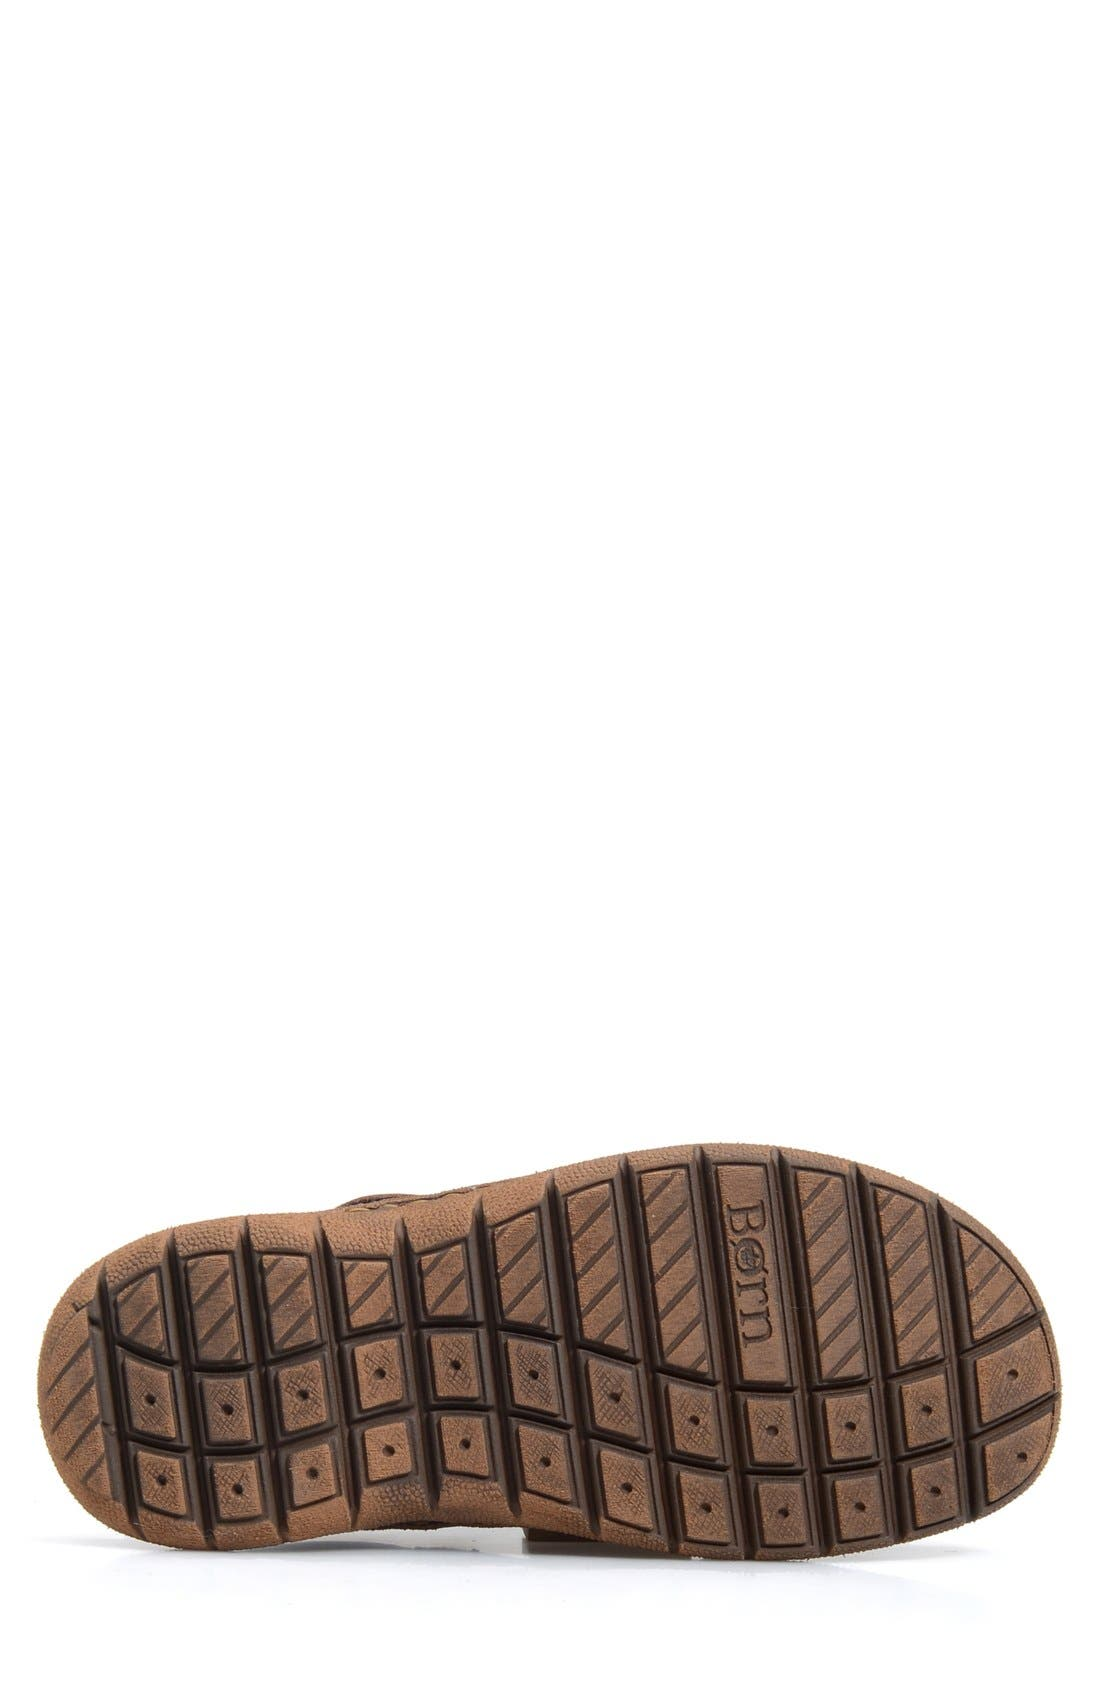 'Cabot II' Sandal,                             Alternate thumbnail 4, color,                             Brown Leather